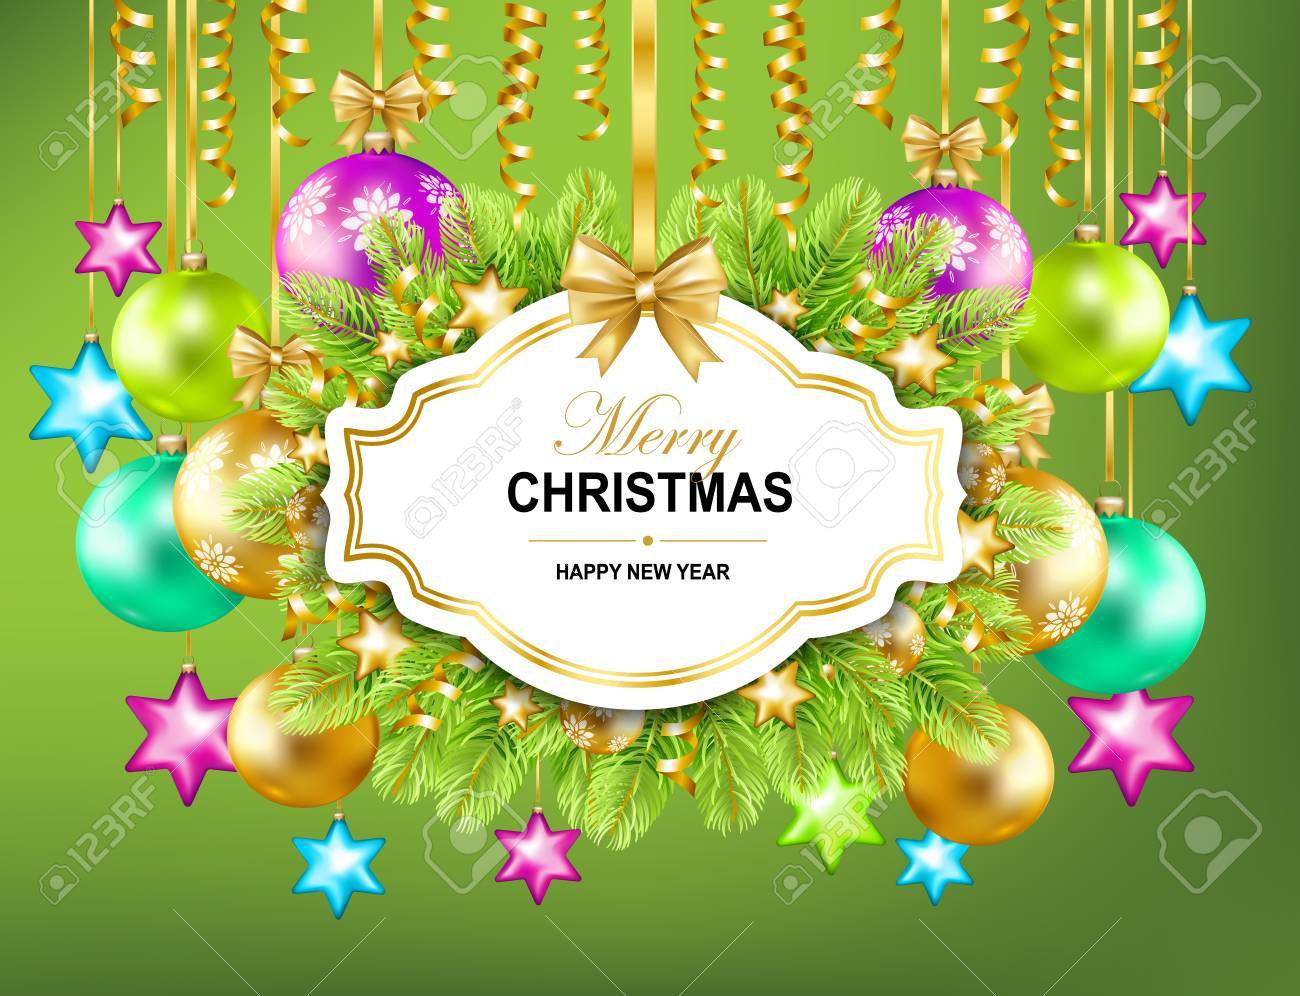 Merry Christmas And Happy New Year Frame With Gold Ribbon